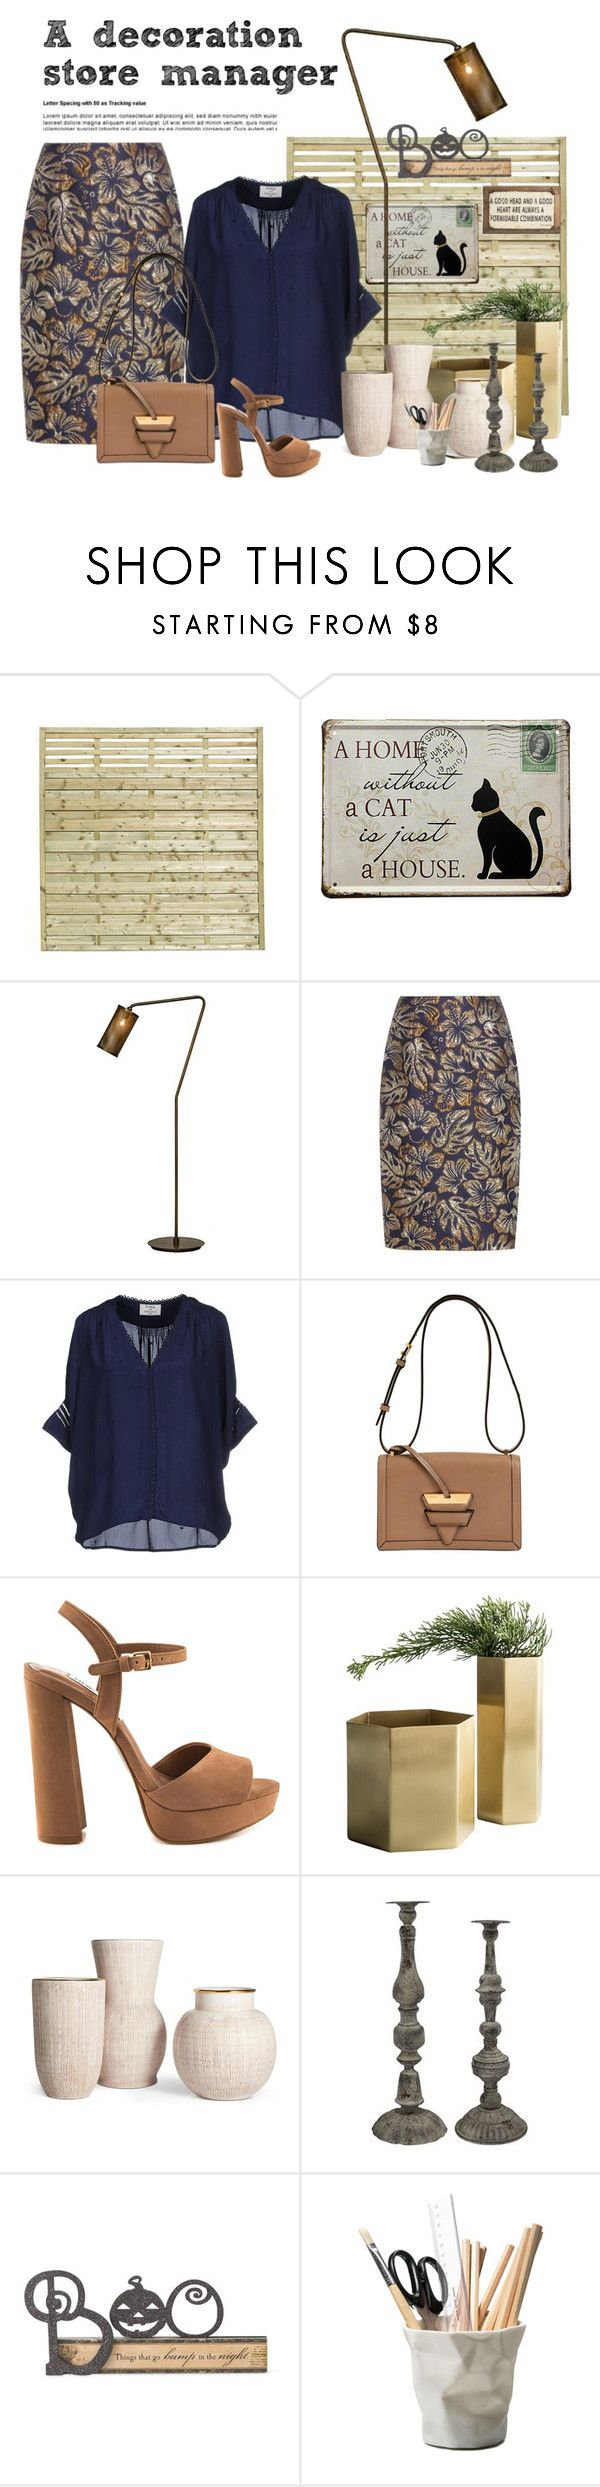 """A decoration store manager"" by suelysara ❤ liked on Polyvore featuring Prada, Loewe, Steve Madden, Minimal, A&B Home, K&K Interiors, ESSEY and Poncho & Goldstein"